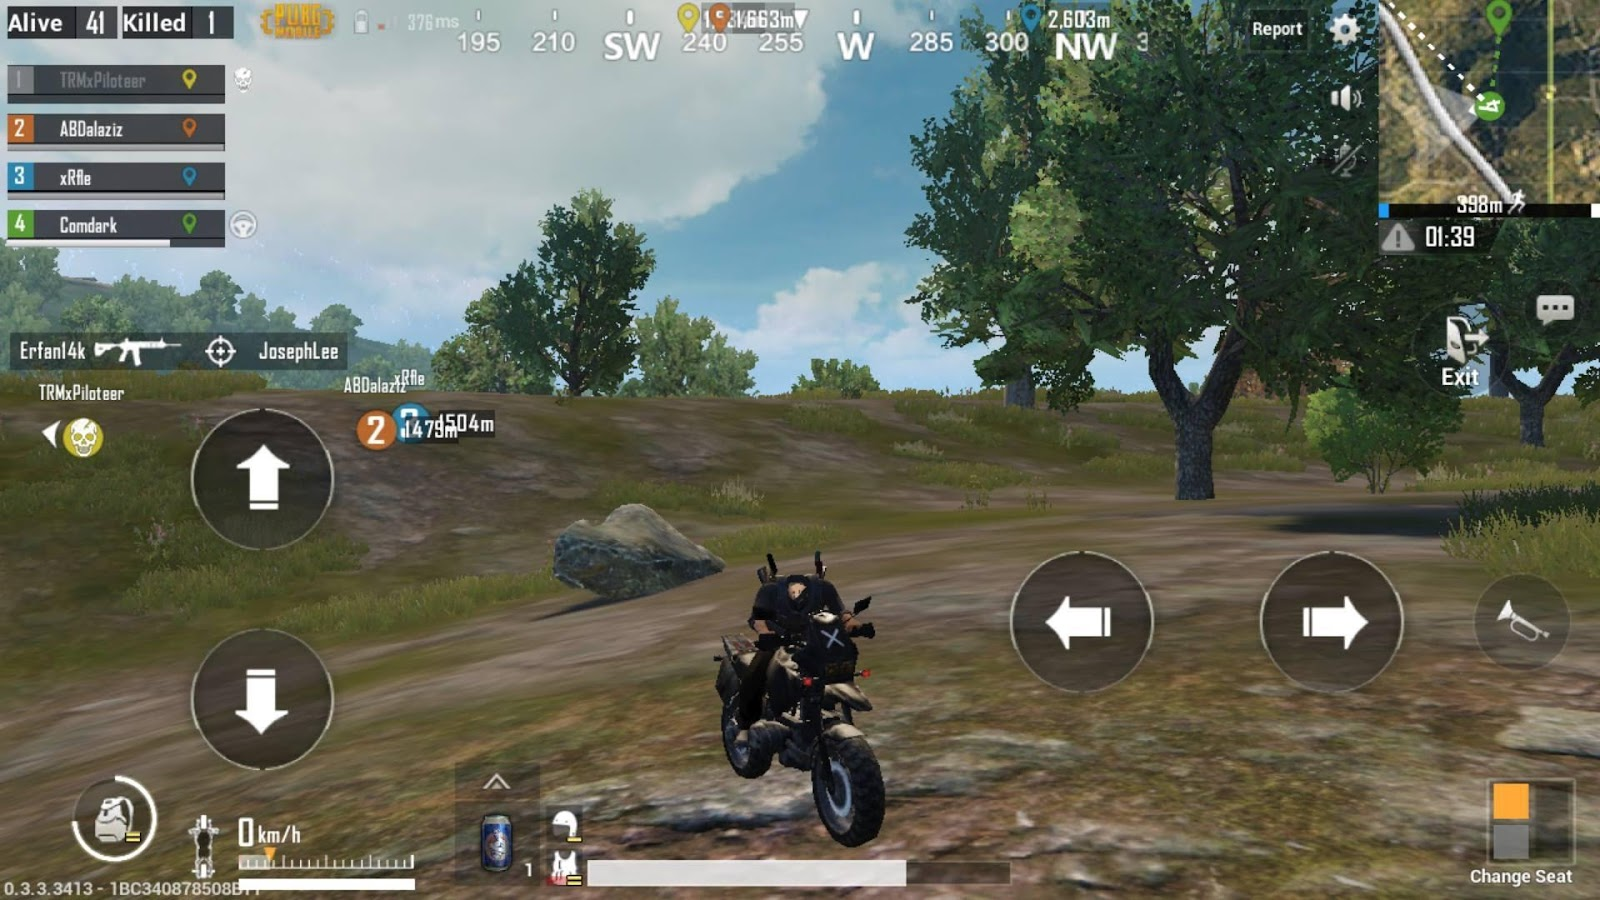 https://www.xemgame.com/data/pictures/xemgame/2018/04/09/pubg-mobile-hai-huoc-7.jpg